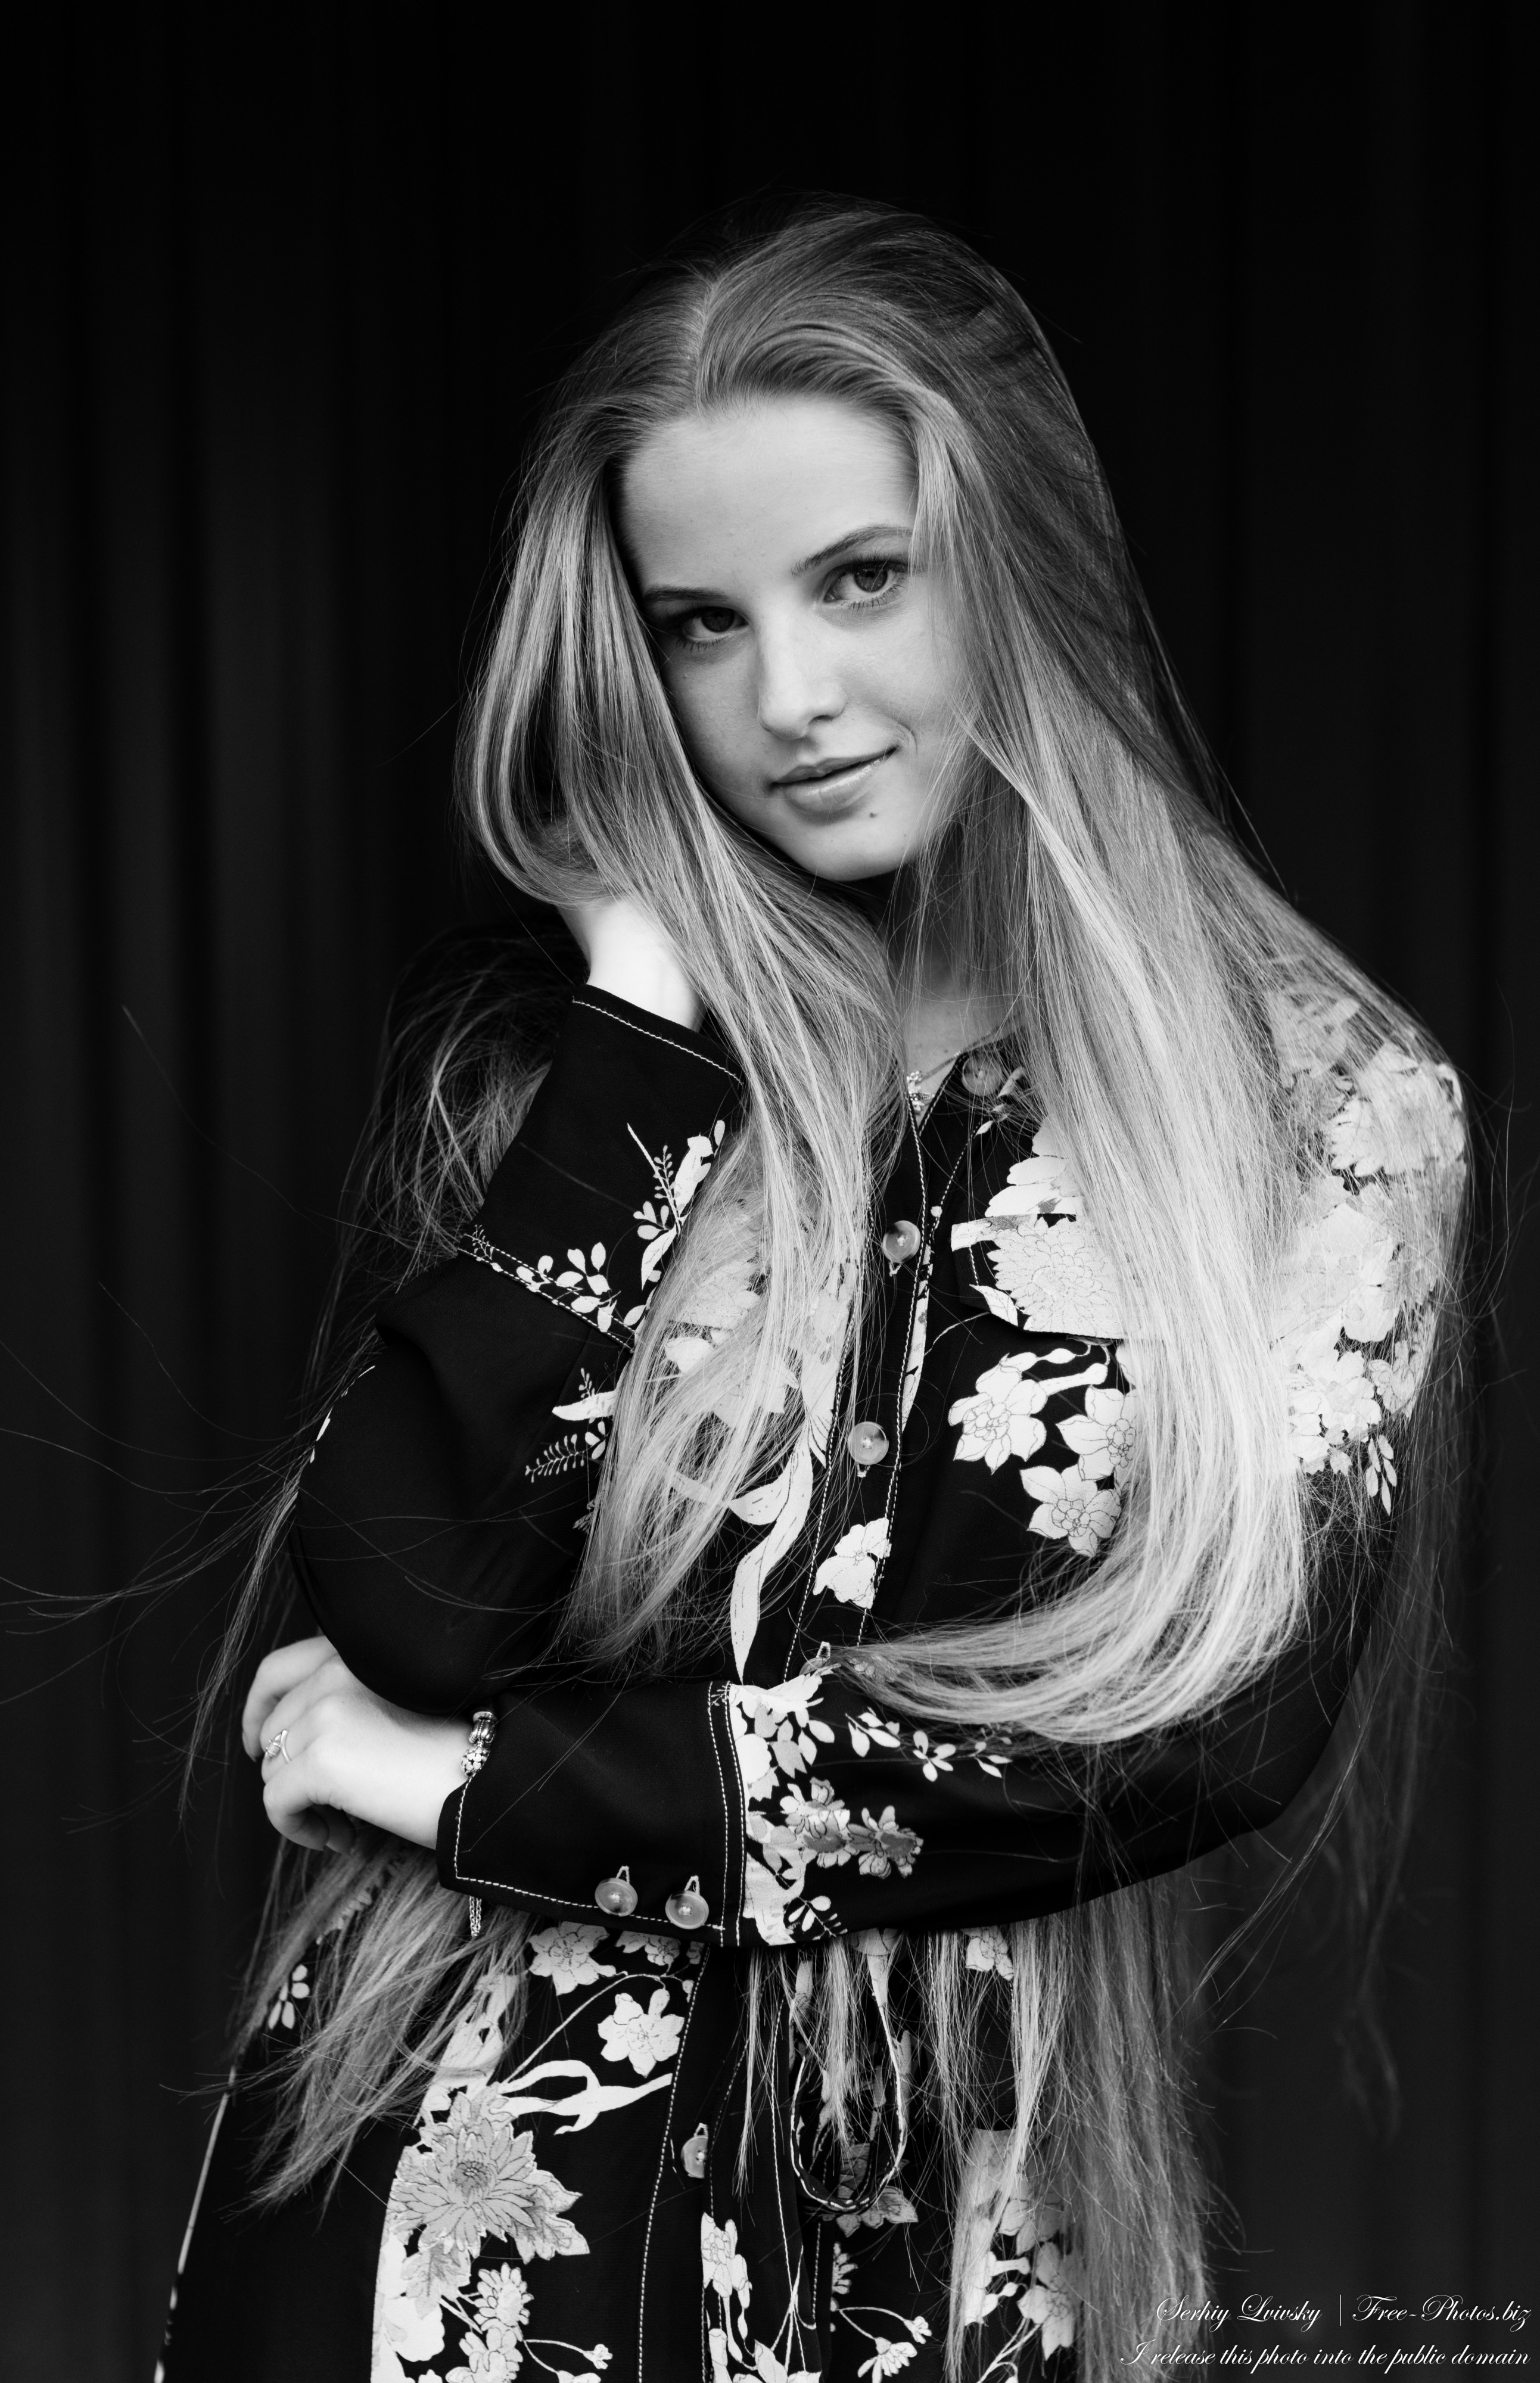 Diana - an 18-year-old natural blonde girl photographed in August 2020 by Serhiy Lvivsky, picture 40